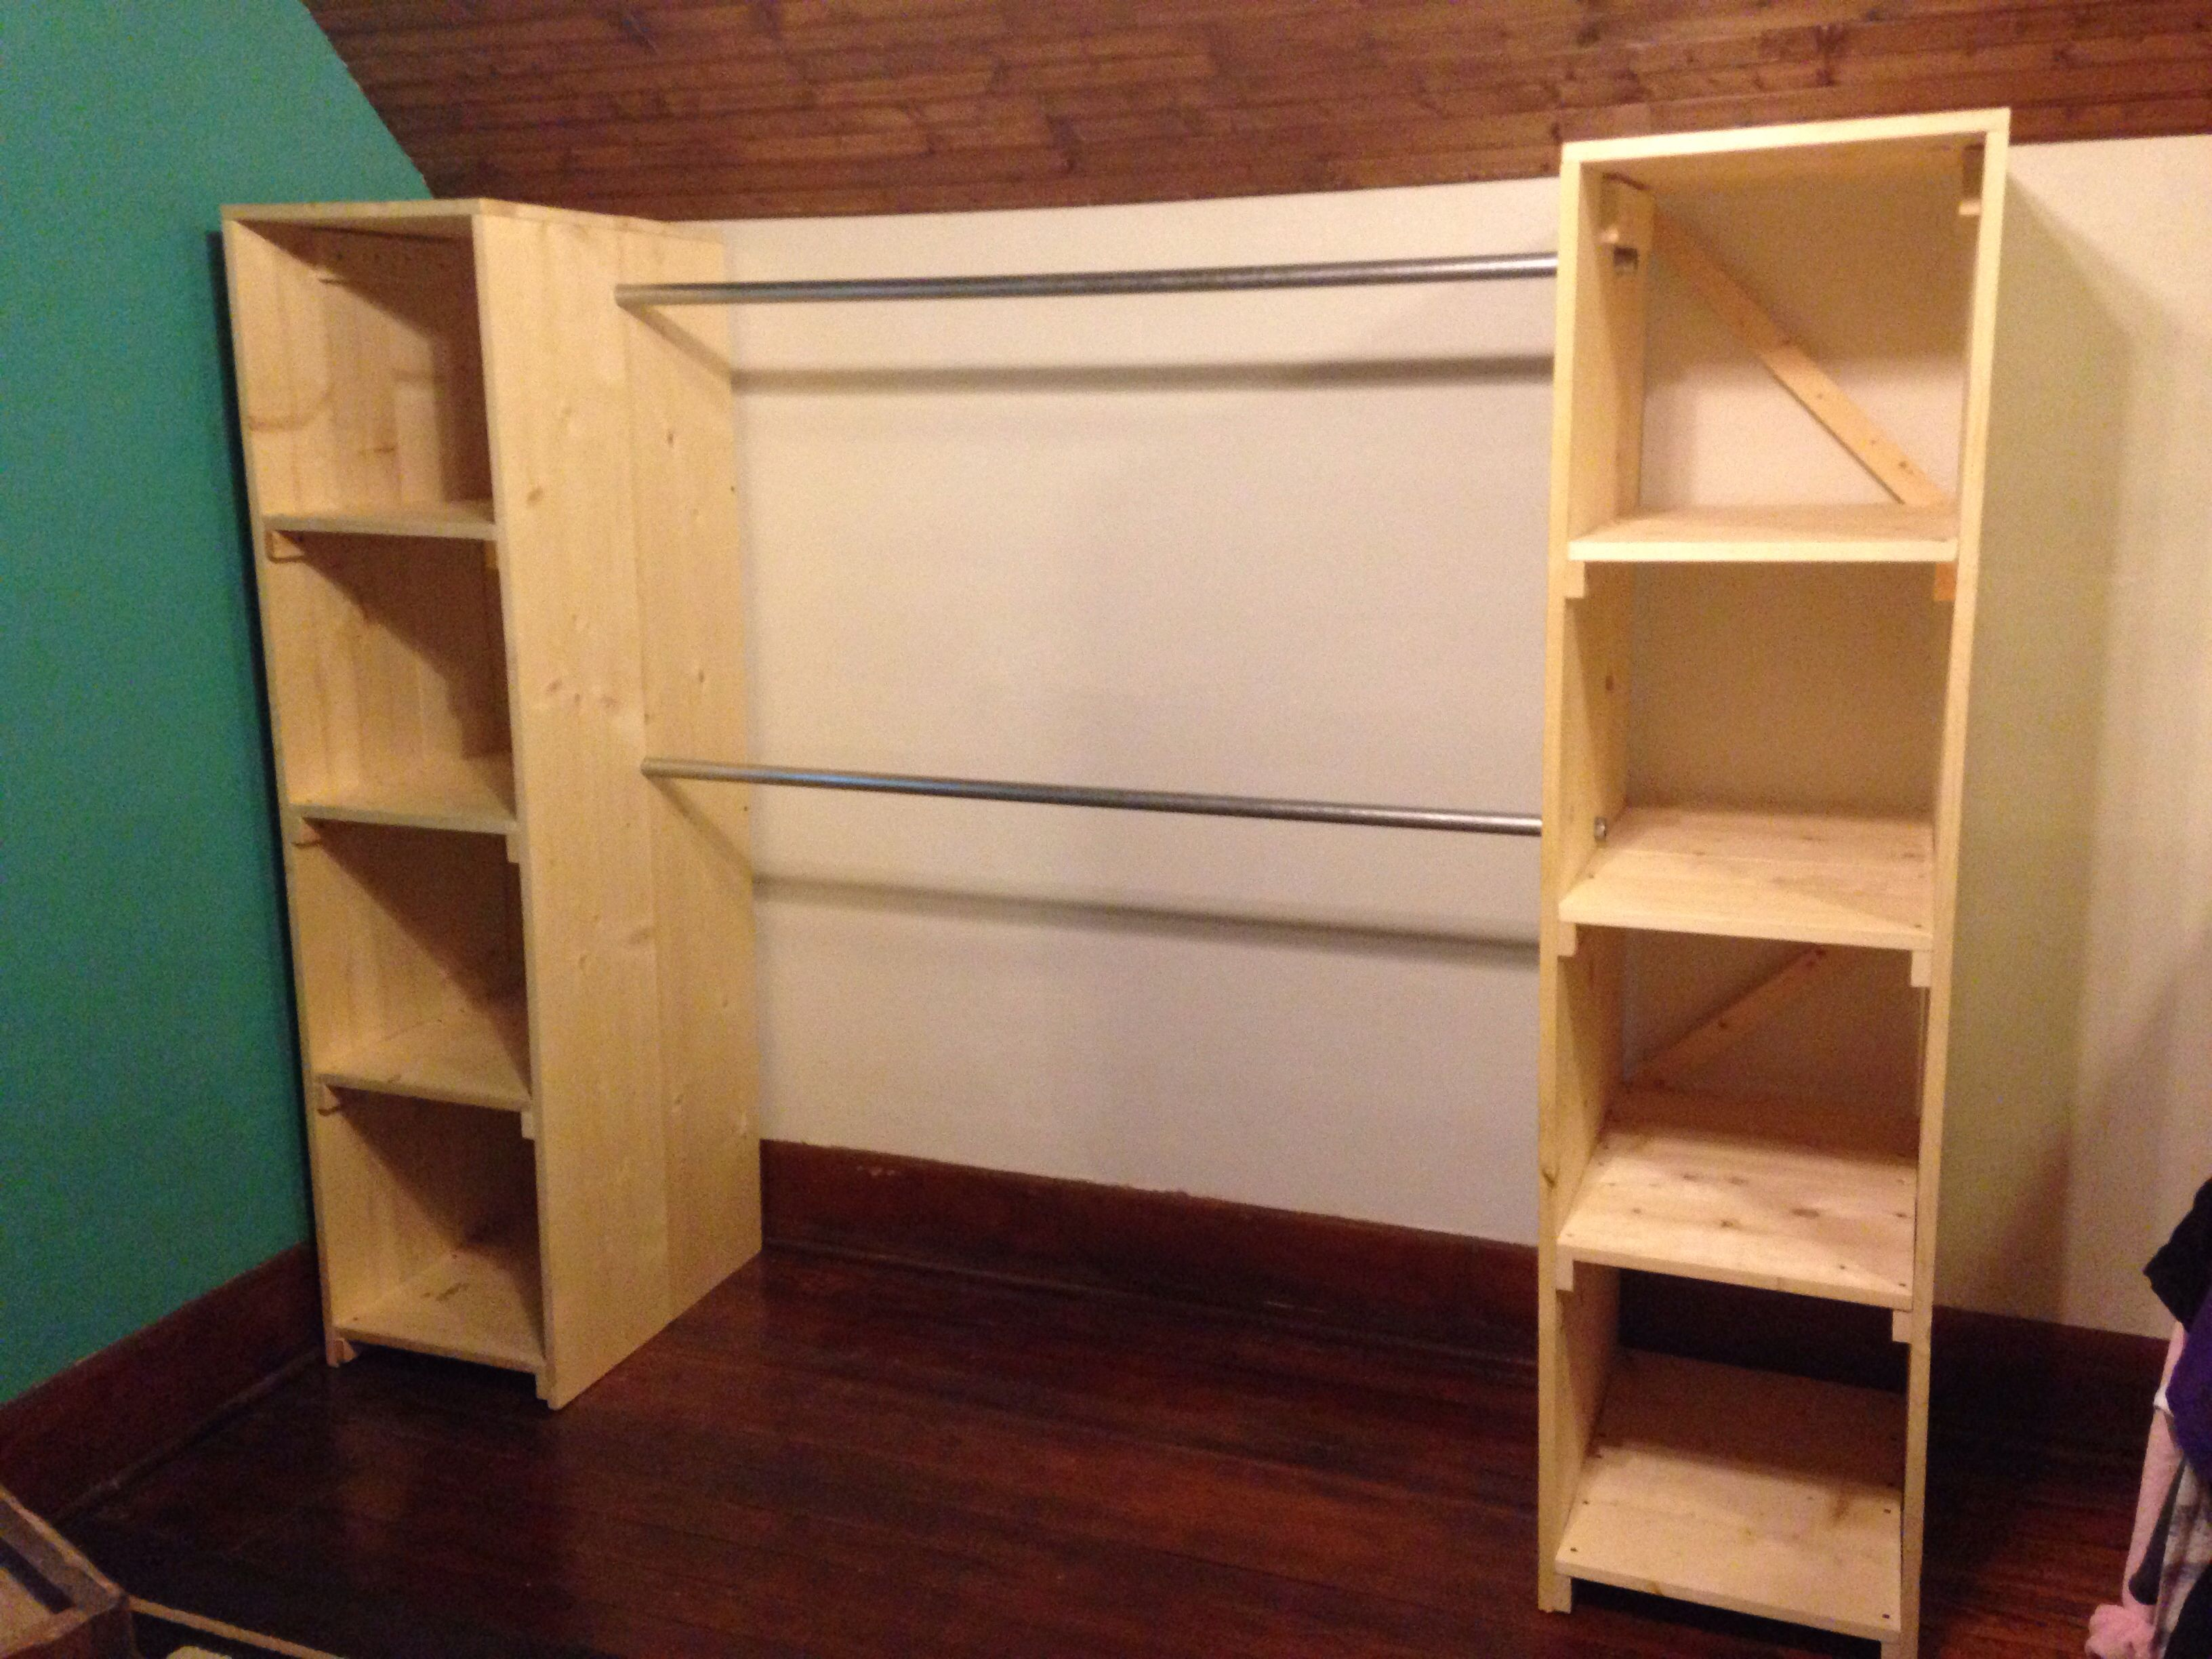 My Free Standing Closet Is Finished It 39 S Perfect For Our Small Home With No Storage Space